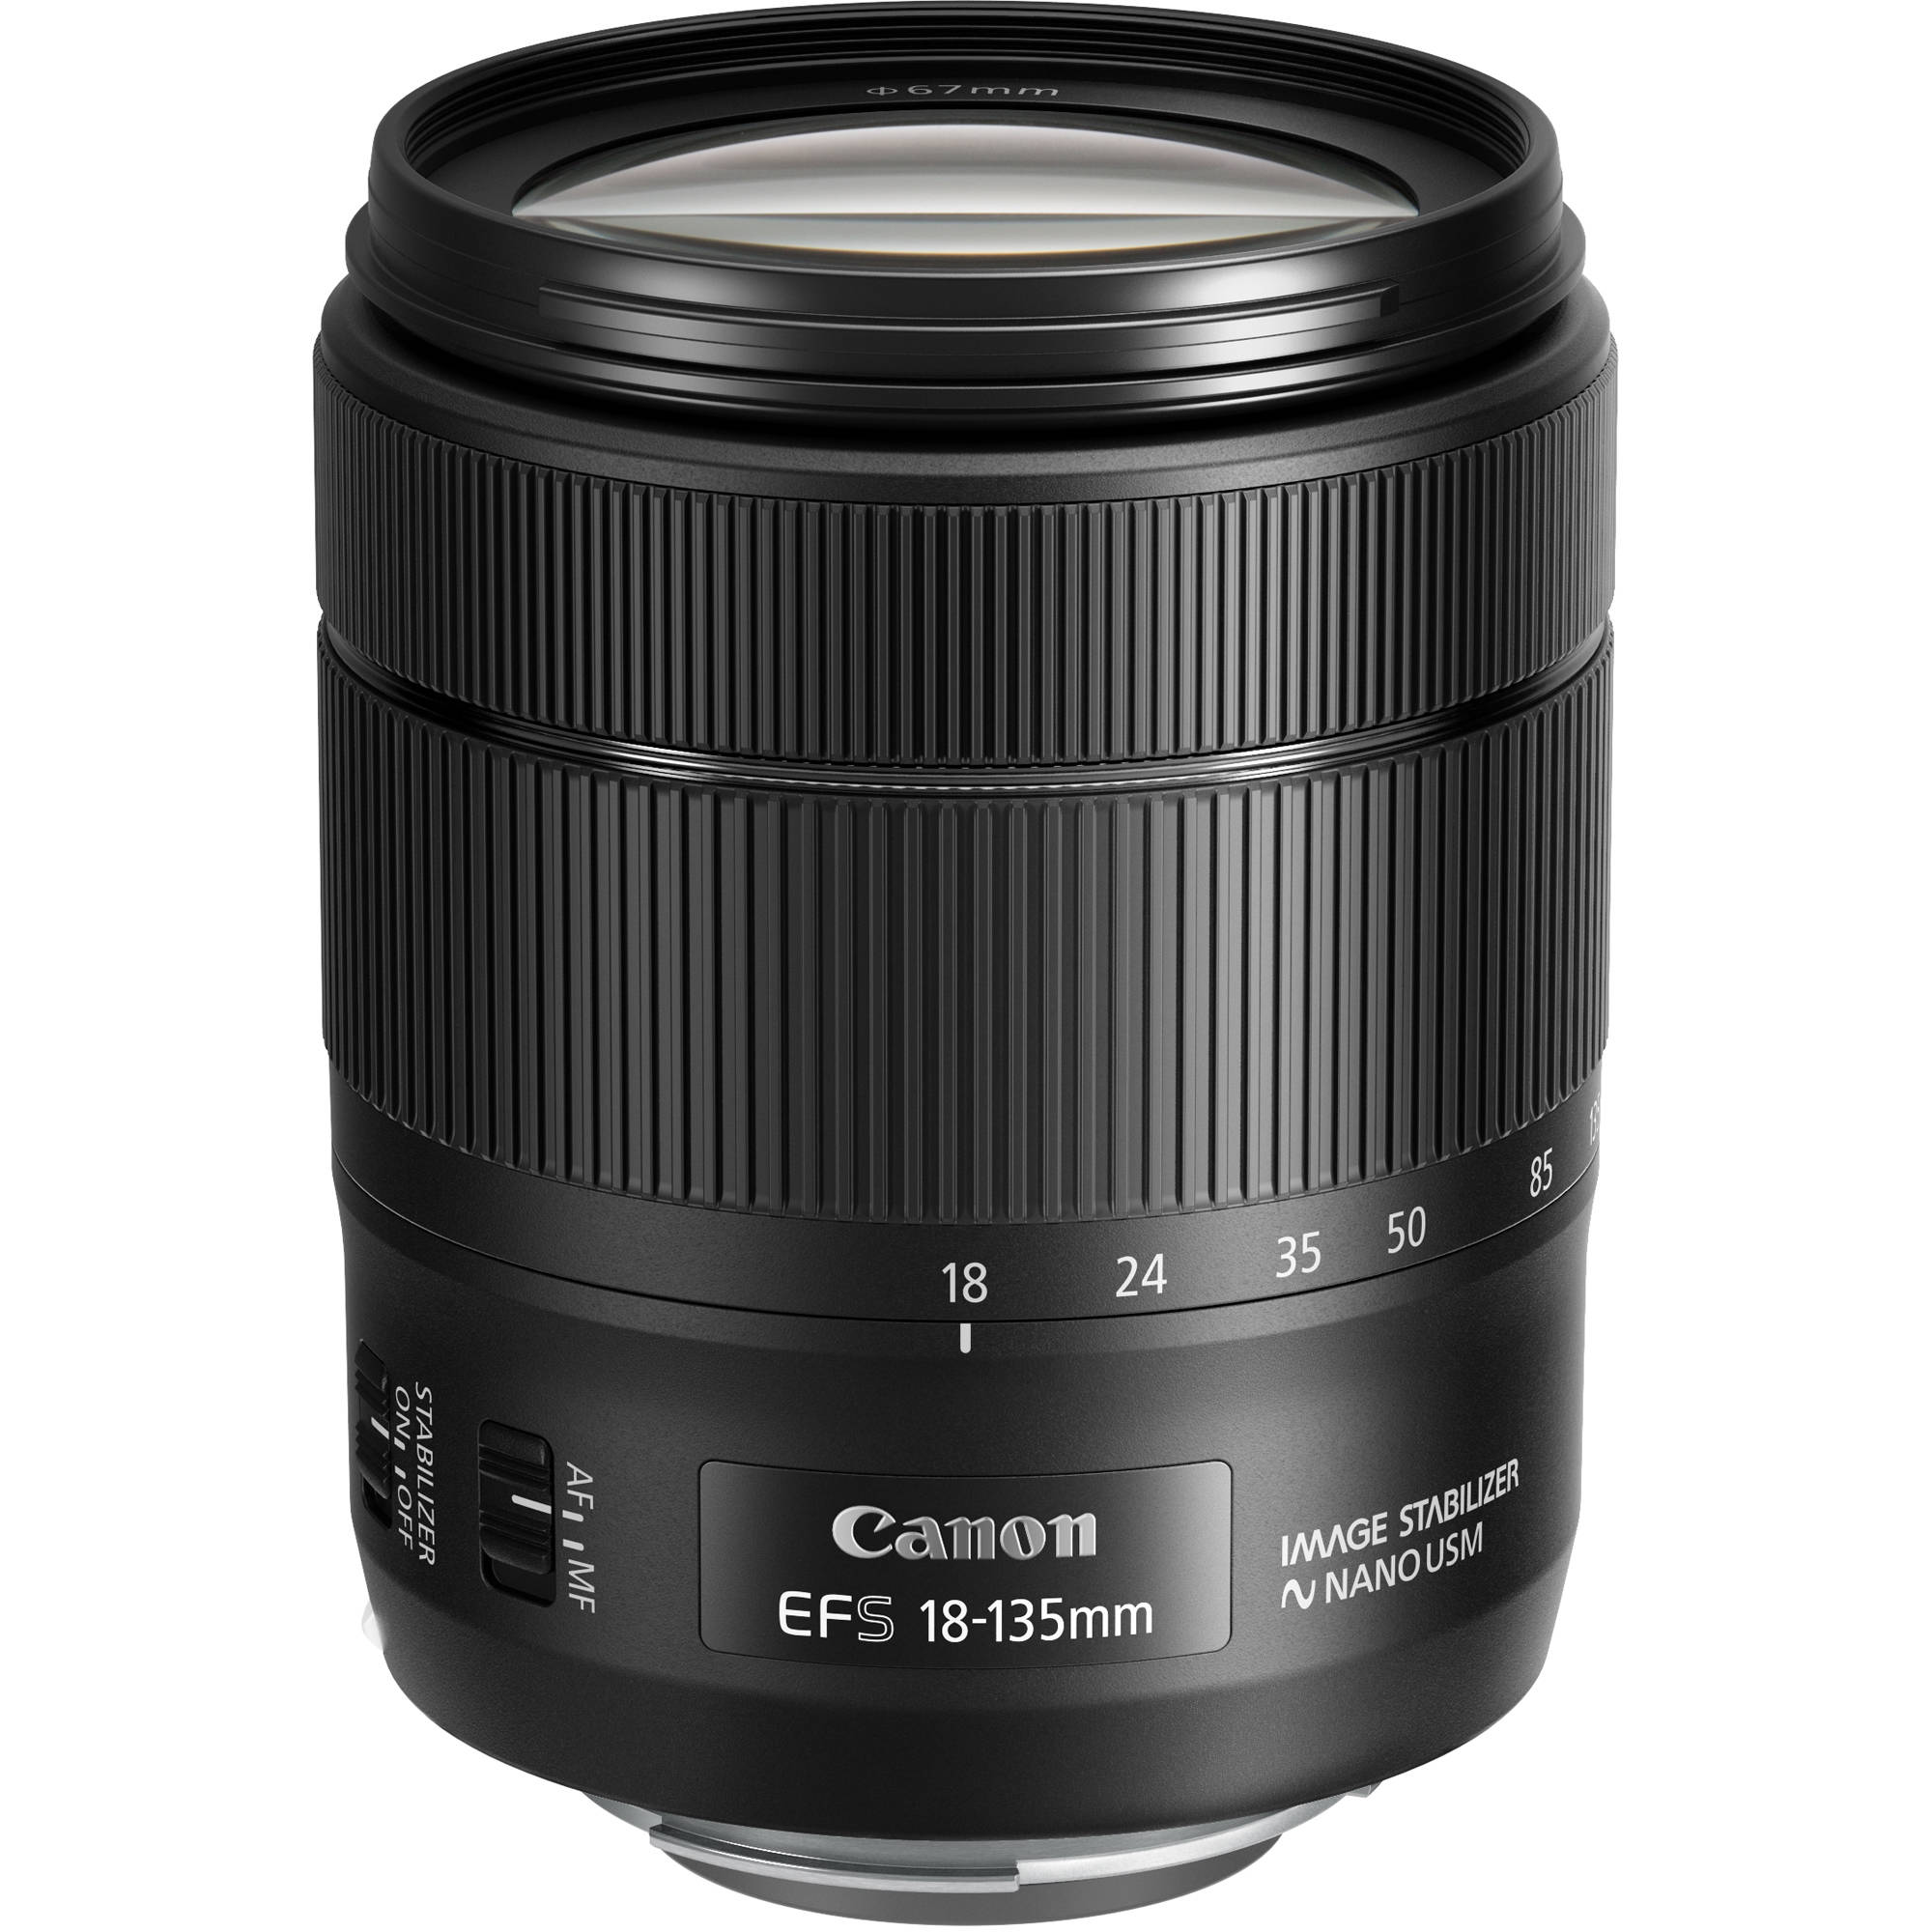 Canon EF-S 18-135mm f/3.5-5.6 IS Nano USM ( Mới 100% )